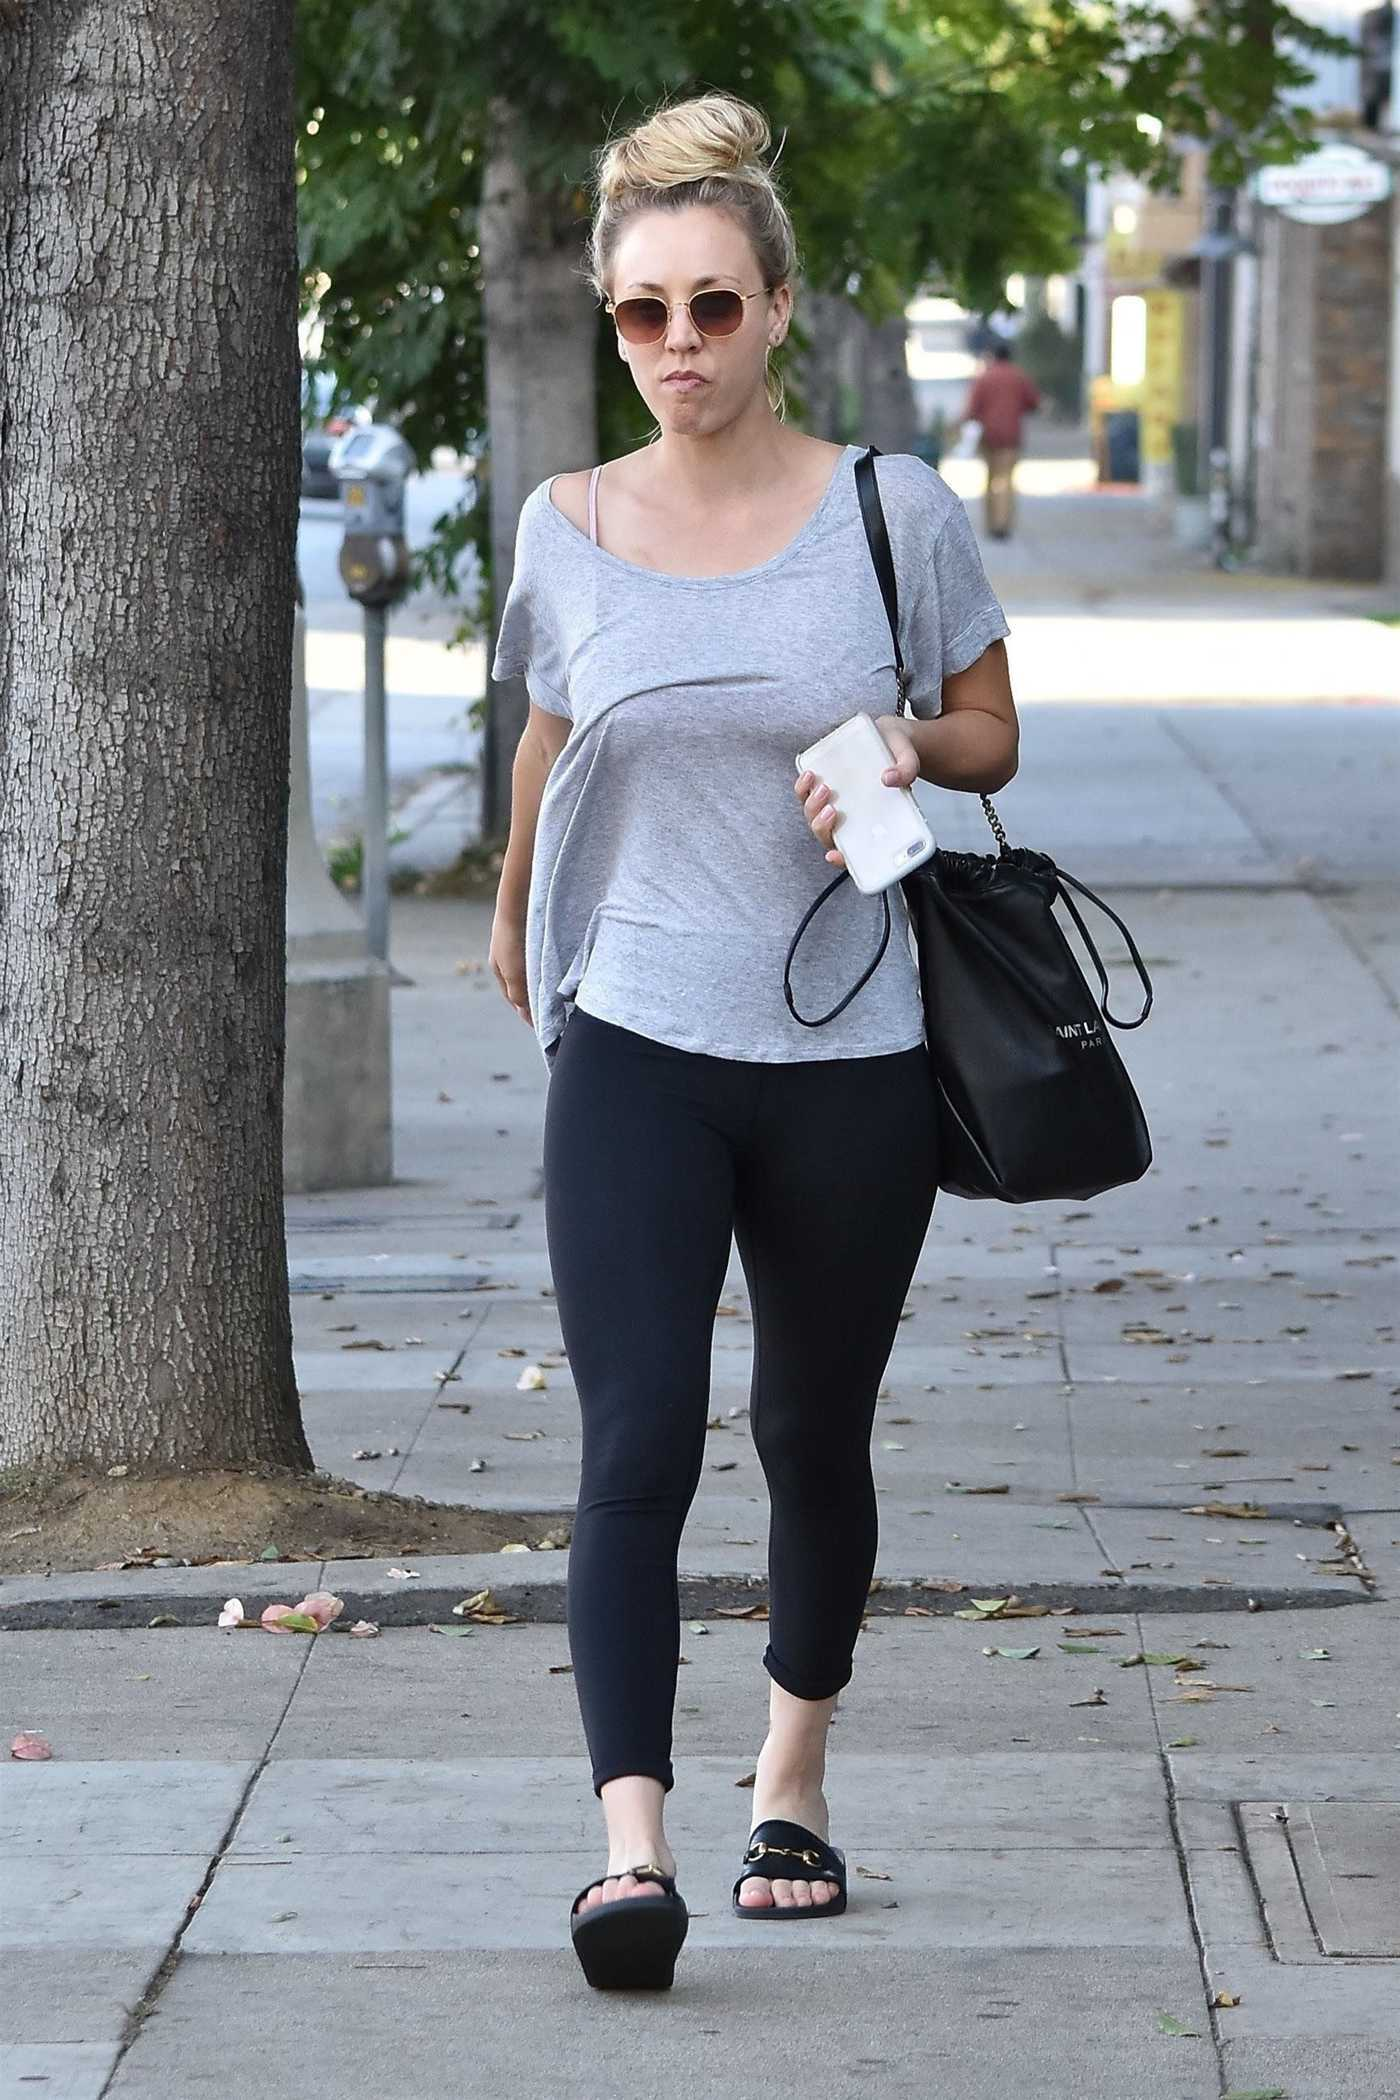 Kaley Cuoco in a Gray T-Shirt Leaves a Nail Salon in Sherman Oaks 10/25/2018